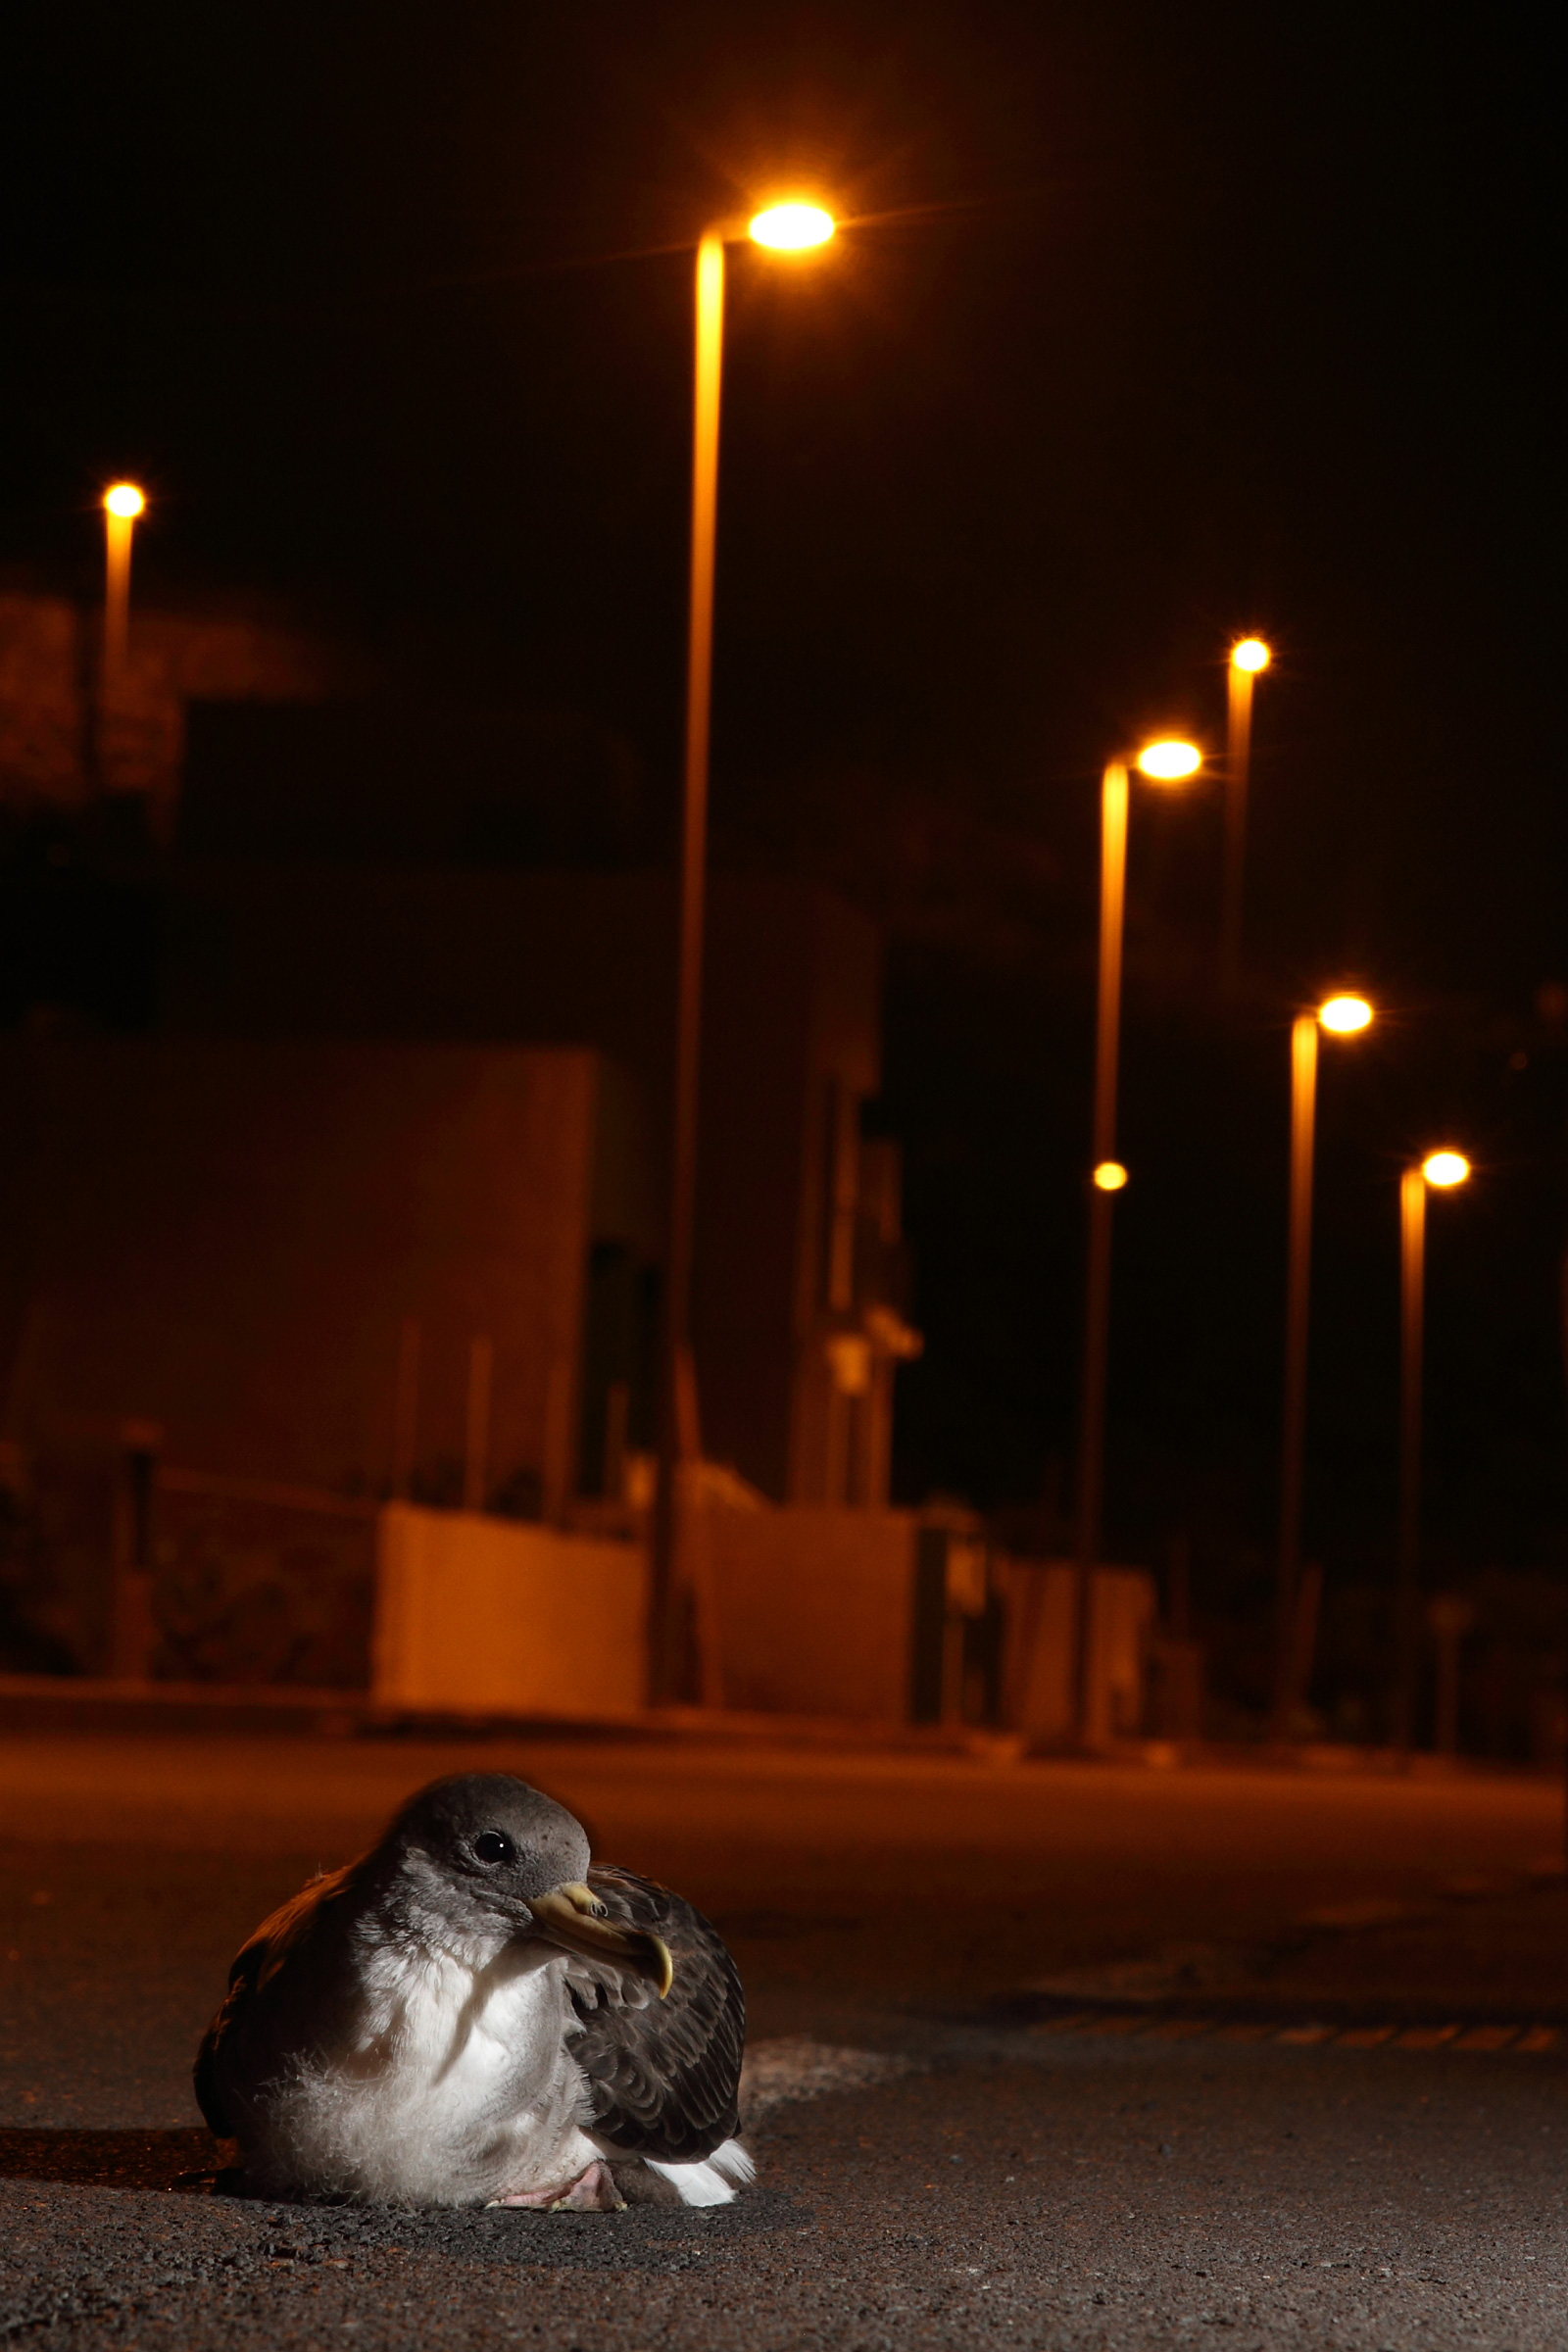 A Cory's Shearwater fledgling is grounded by artificial lights in Tenerife, Canary Islands. Airam Rodríguez